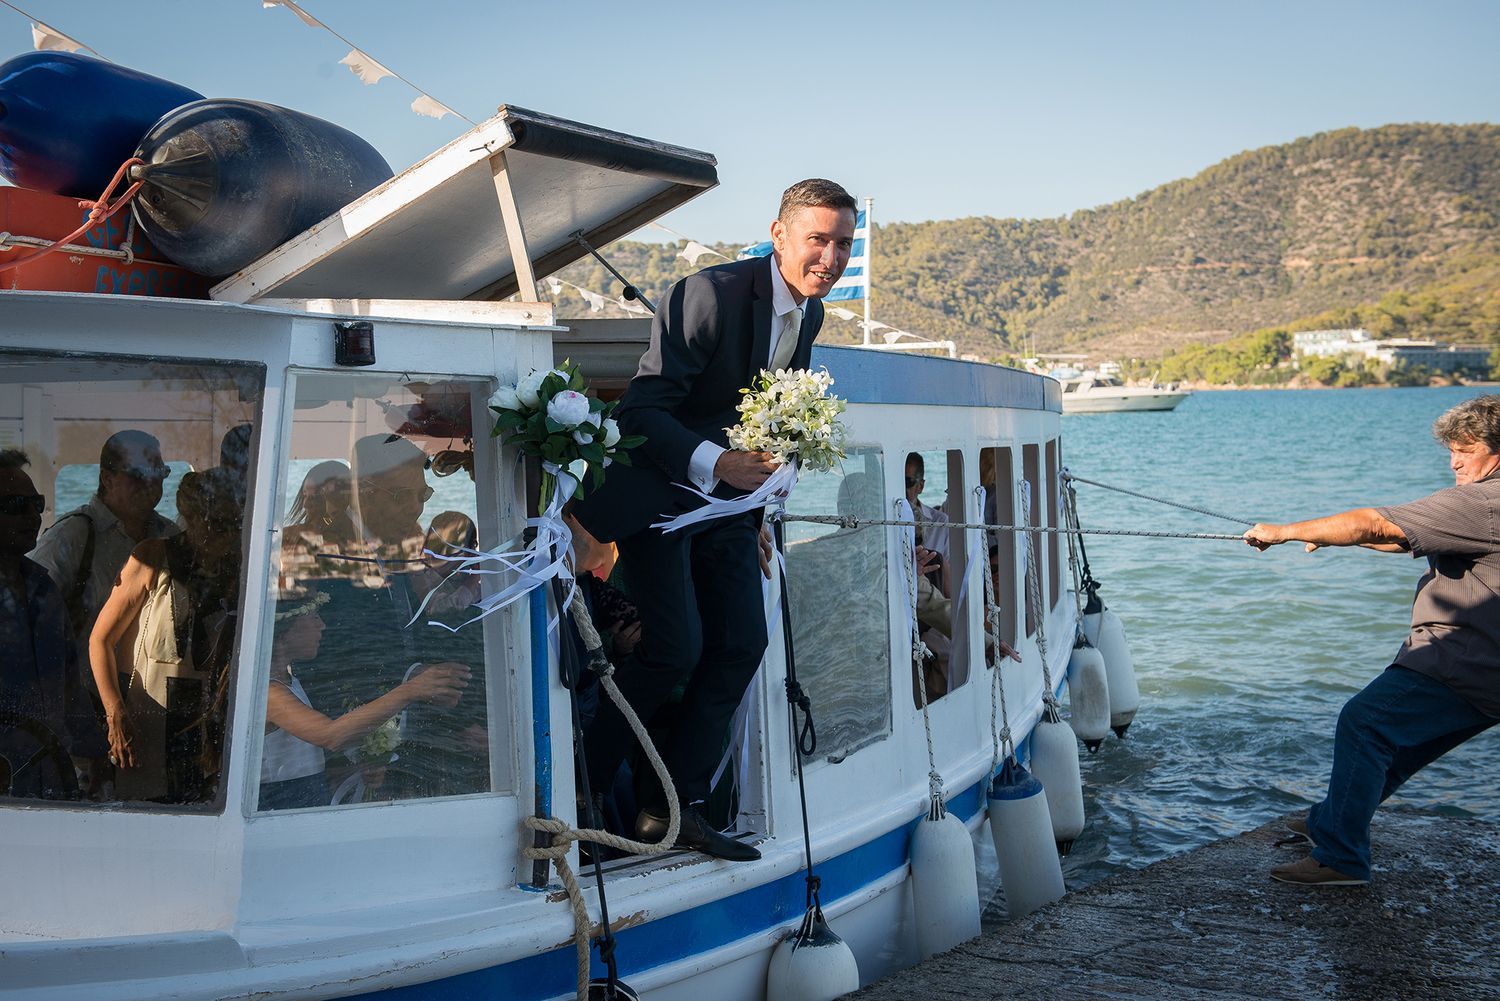 smiling groom gets out of the boat which brought him to the wedding ceremony place